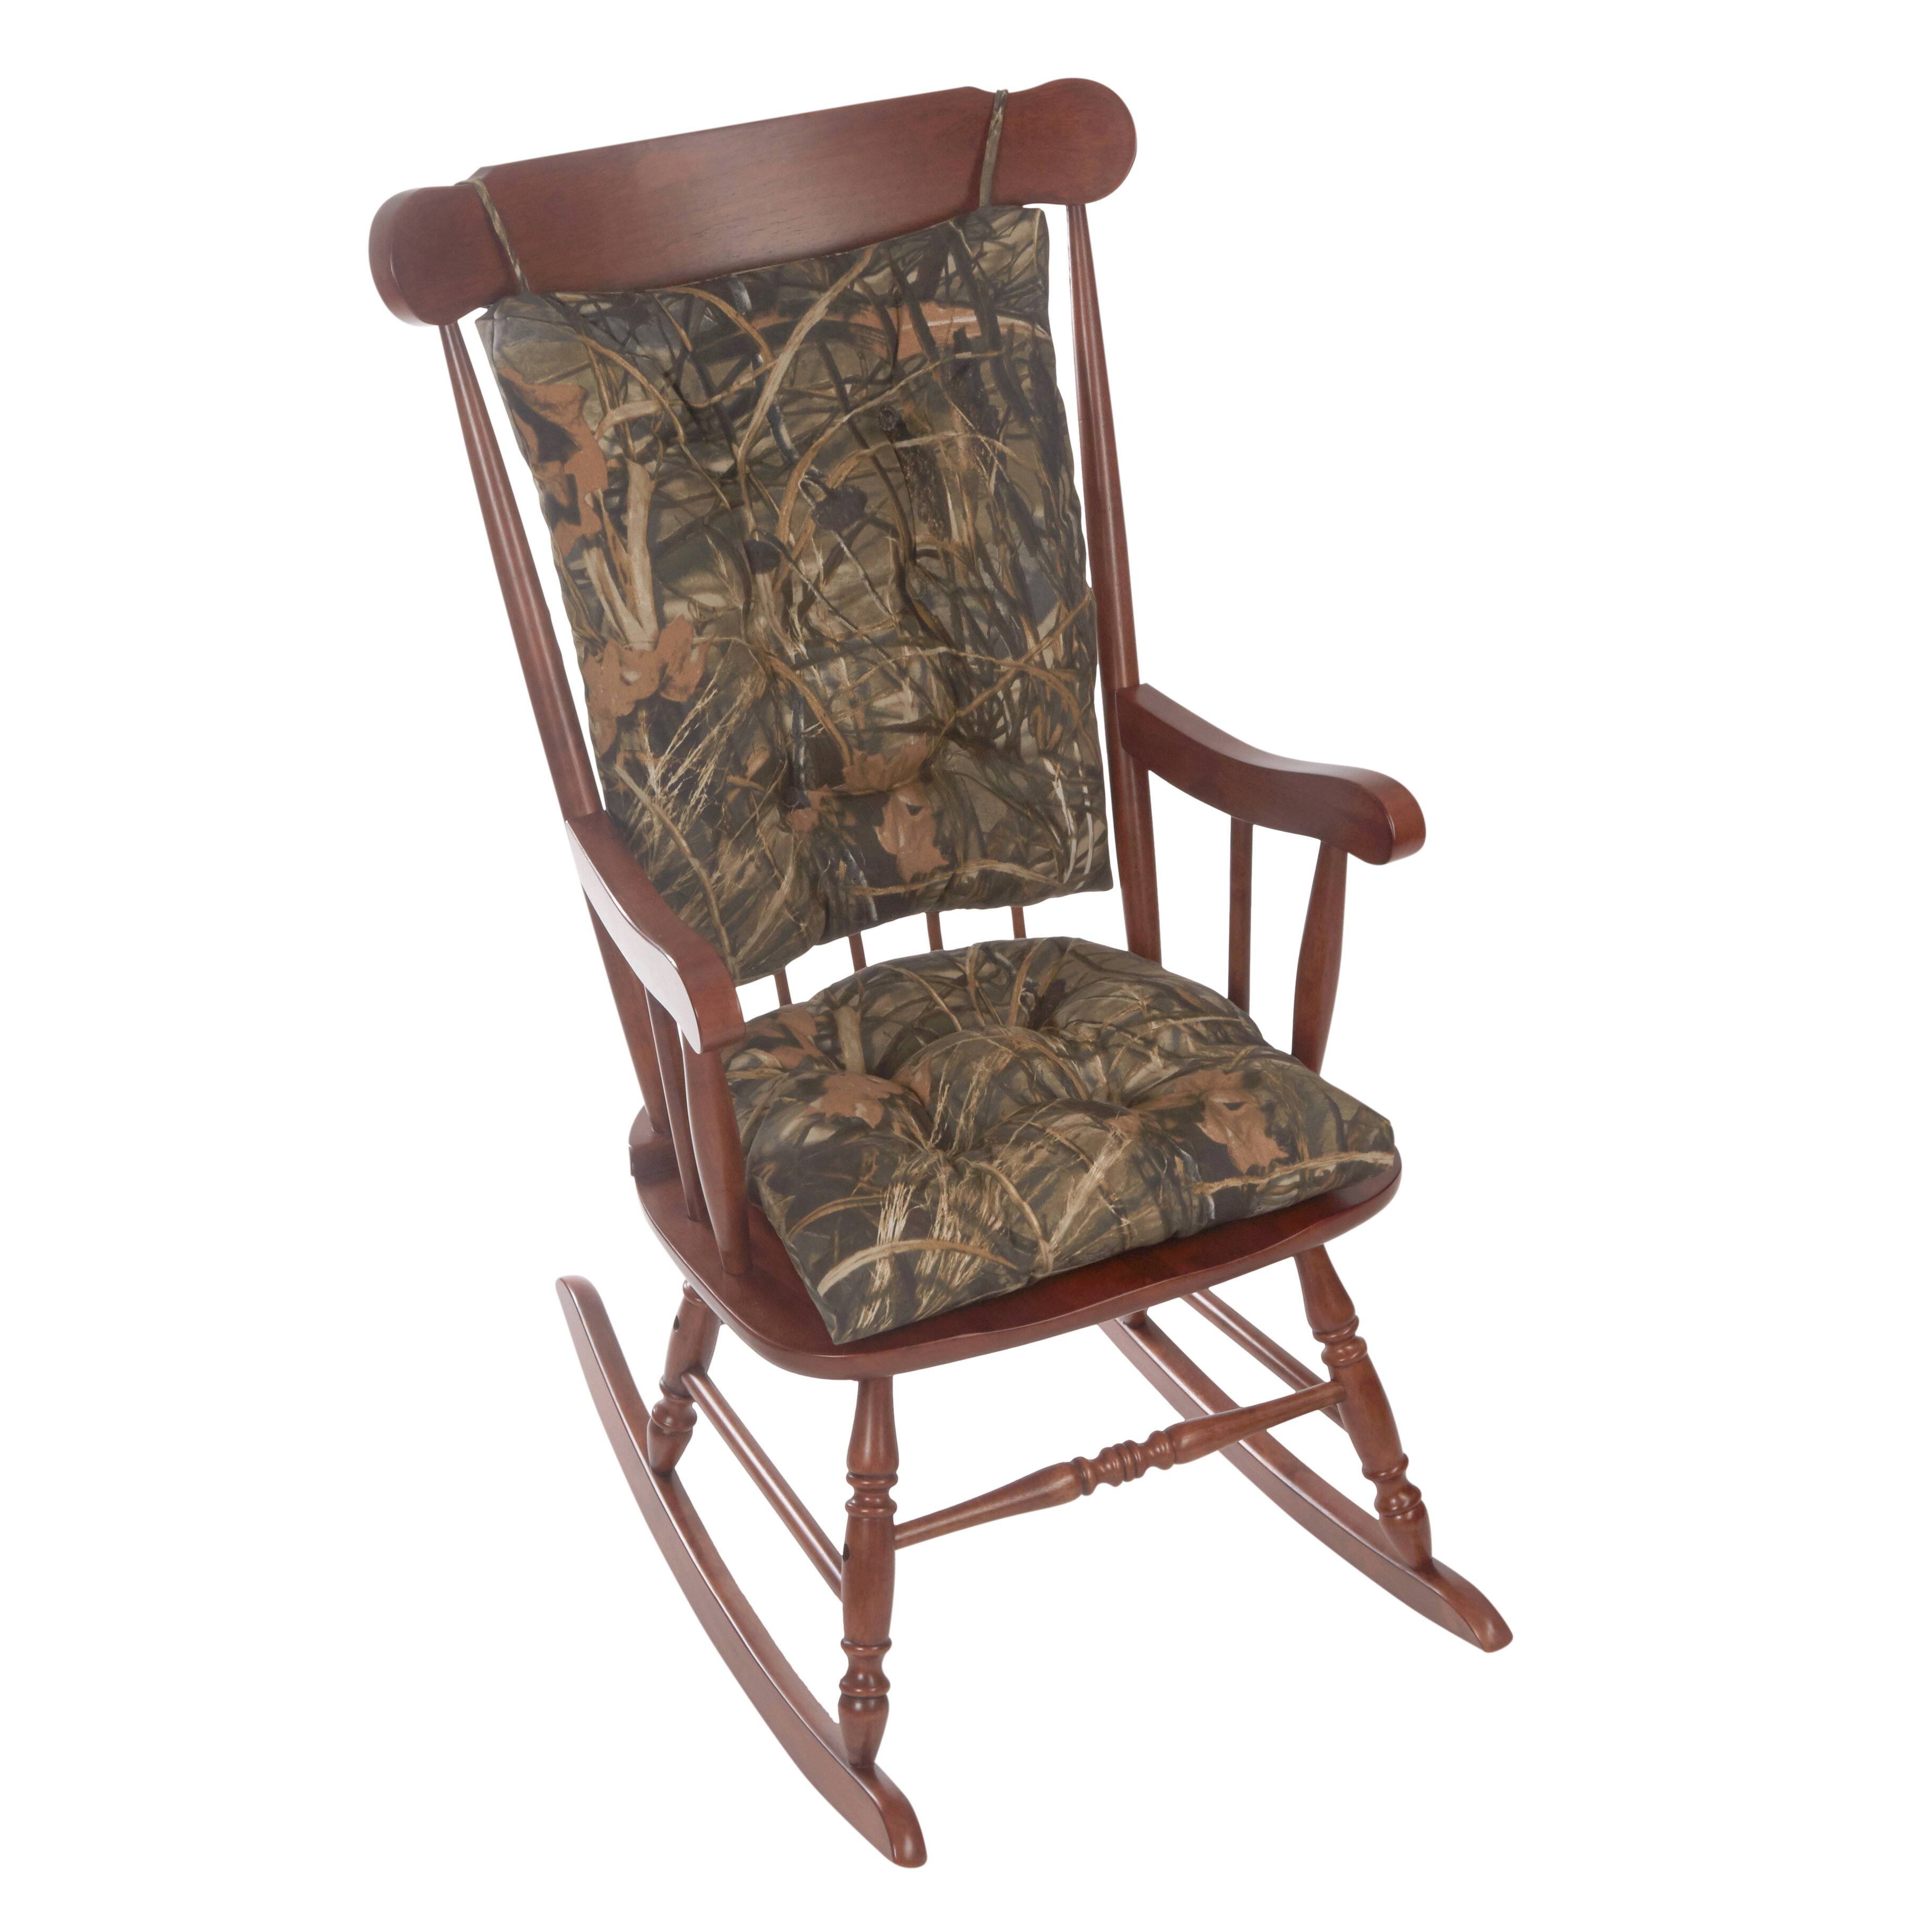 Awe Inspiring Gripper Realtree Jumbo Indoor Outdoor Rocking Chair Cushion Home Interior And Landscaping Palasignezvosmurscom